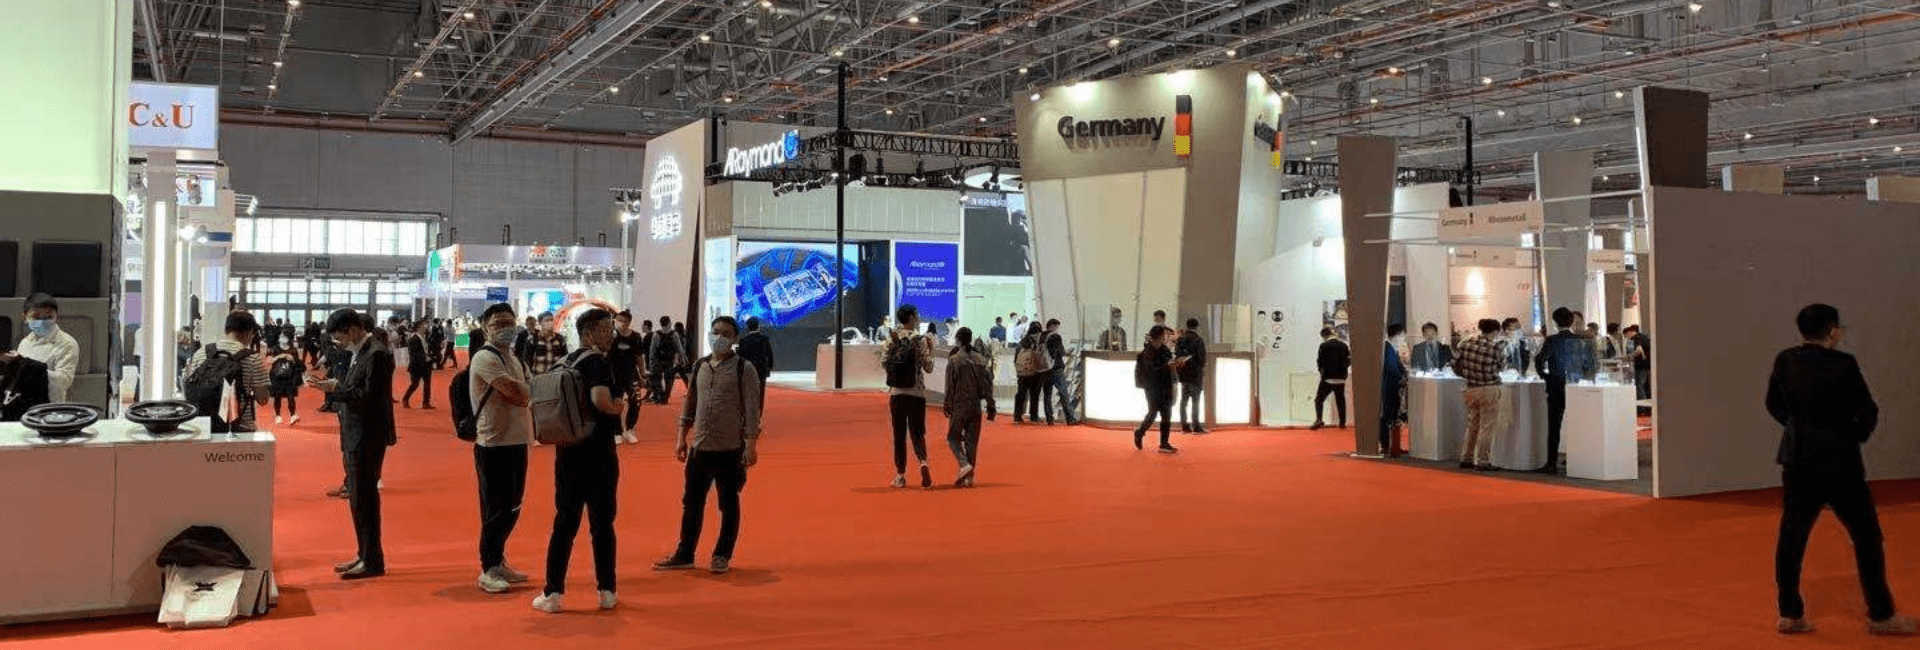 OLED Lighting Makes a Splash at Auto Shanghai 2021 Conference